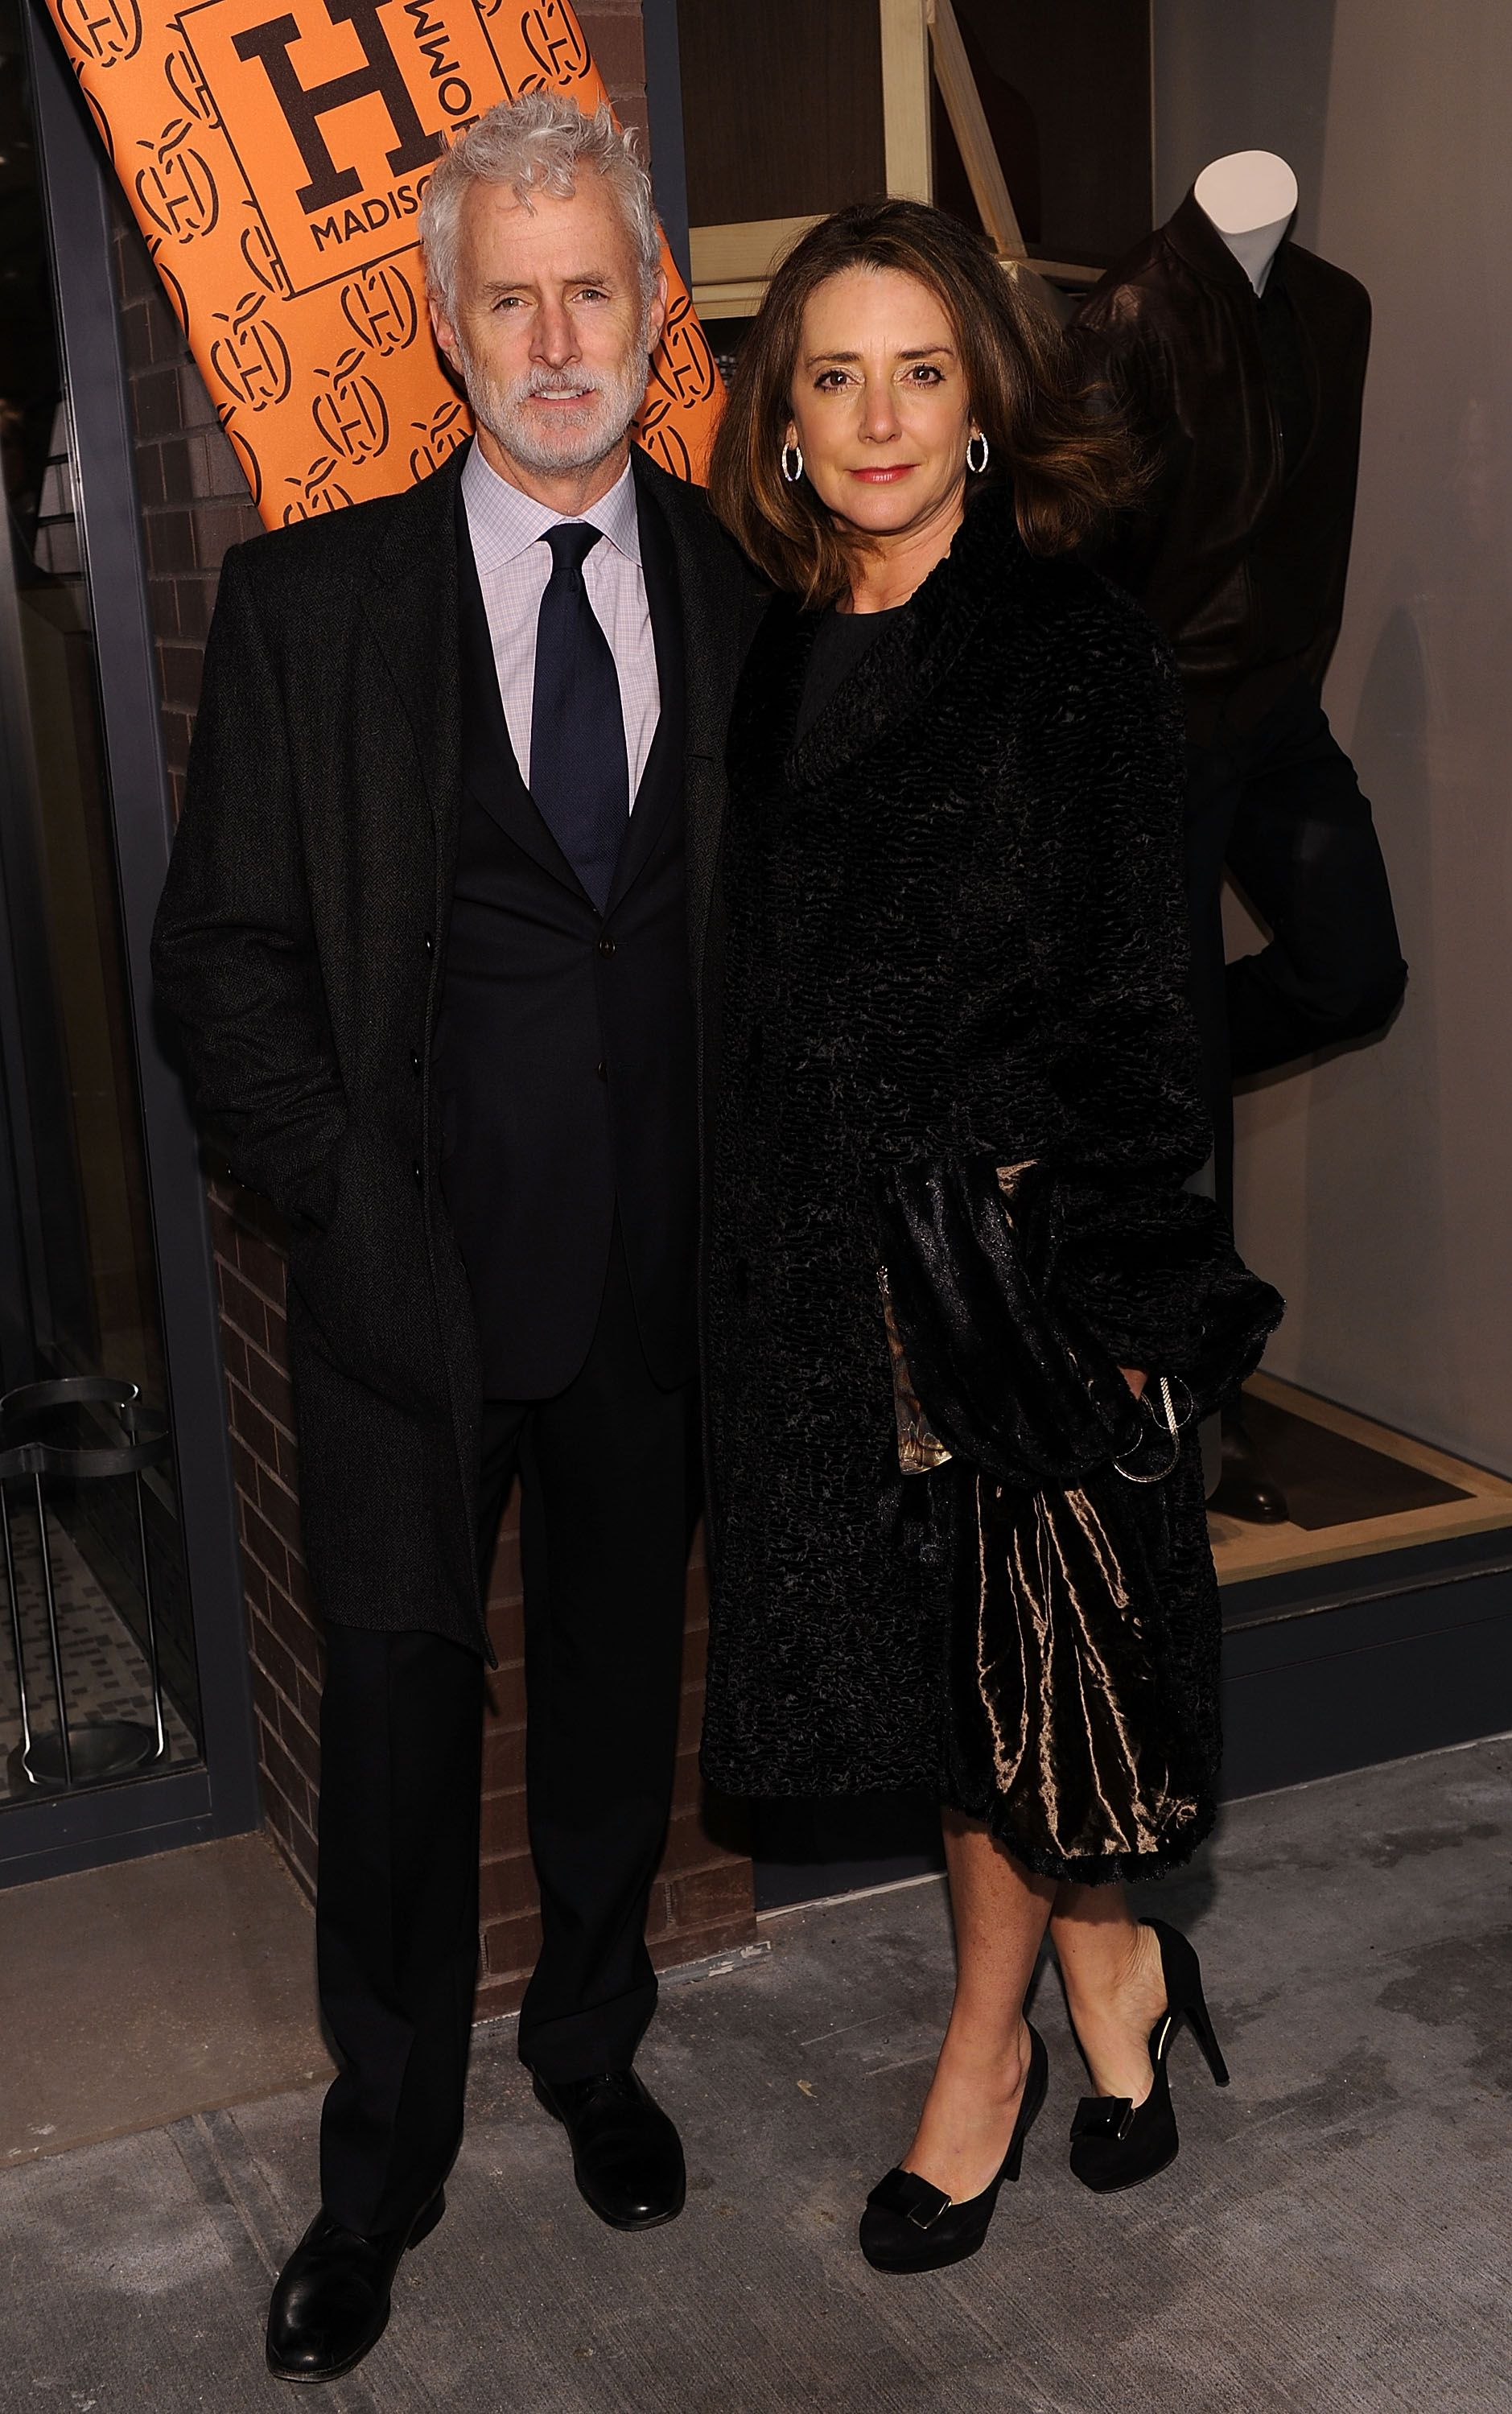 John Slattery and Talia Balsam at the opening of the first Hermes Men's Store in 2010 in New York City | Source: Getty Images